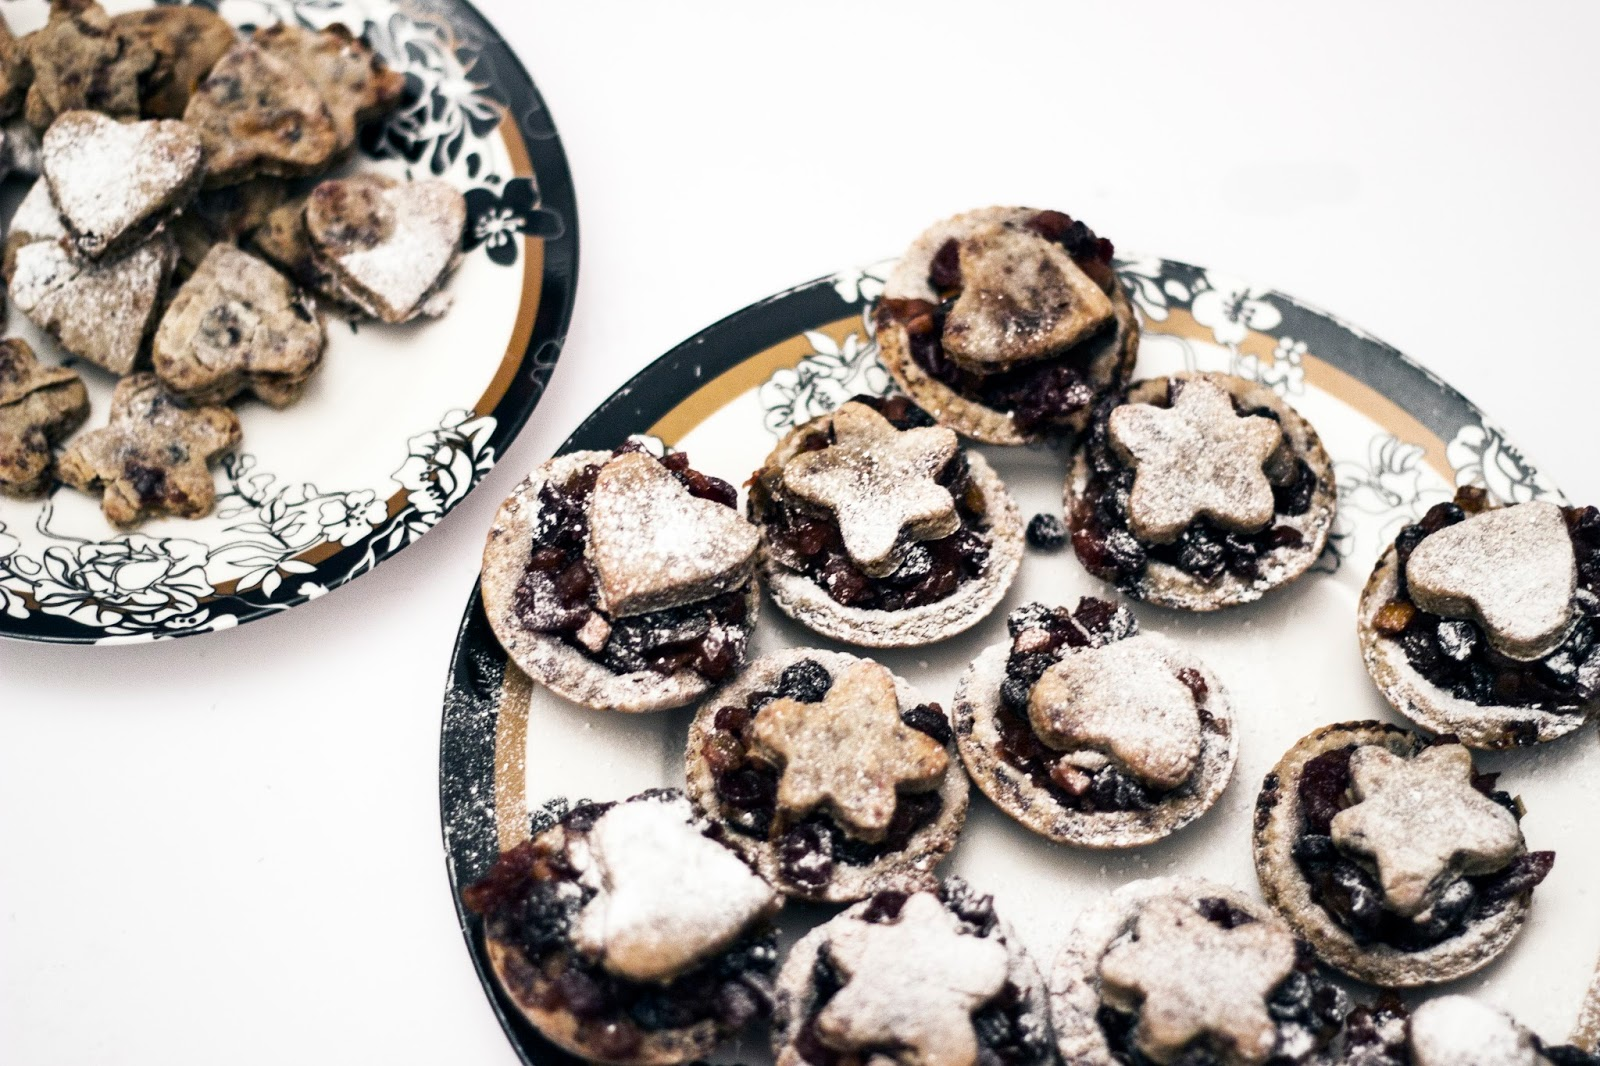 http://www.thewhimsicalwildling.com/2016/12/healthy-mince-pies-vegan.html